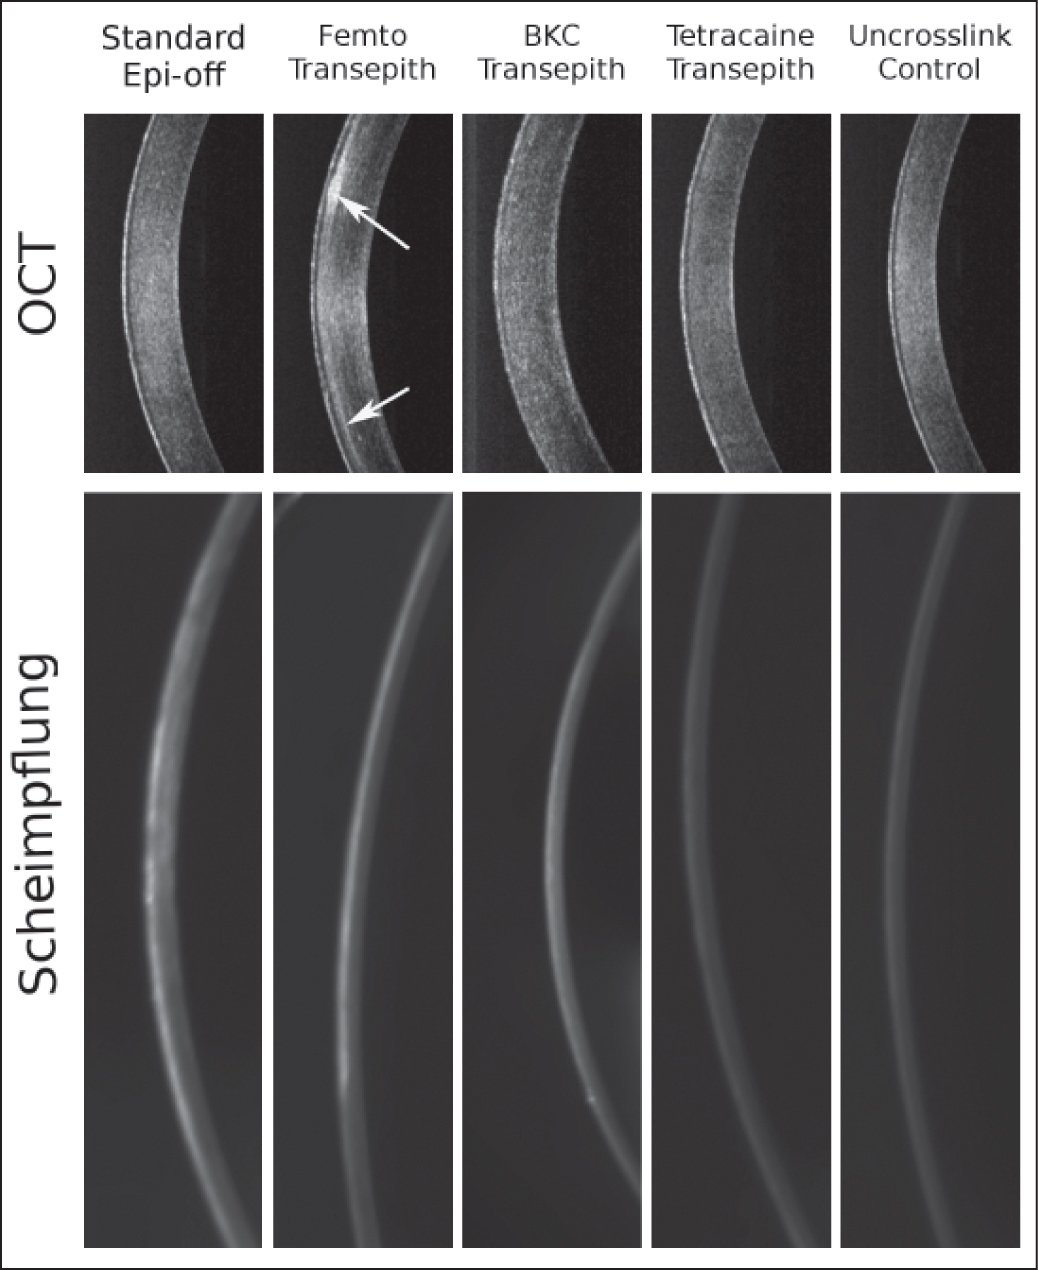 Optical coherence tomography (OCT) images obtained during OCT elastography and Scheimpflug densitometry images of representative corneas from each group 2 months after treatment. Note that the opacity (arrows) attributed to the femtosecond laser pocket can be clearly noted in the cornea from the femtosecond laser-assisted cross-linking (CXL) group in the top panel. (Original magnification ×40) Epi-off = epithelium-off, BKC = benzalkonium chloride